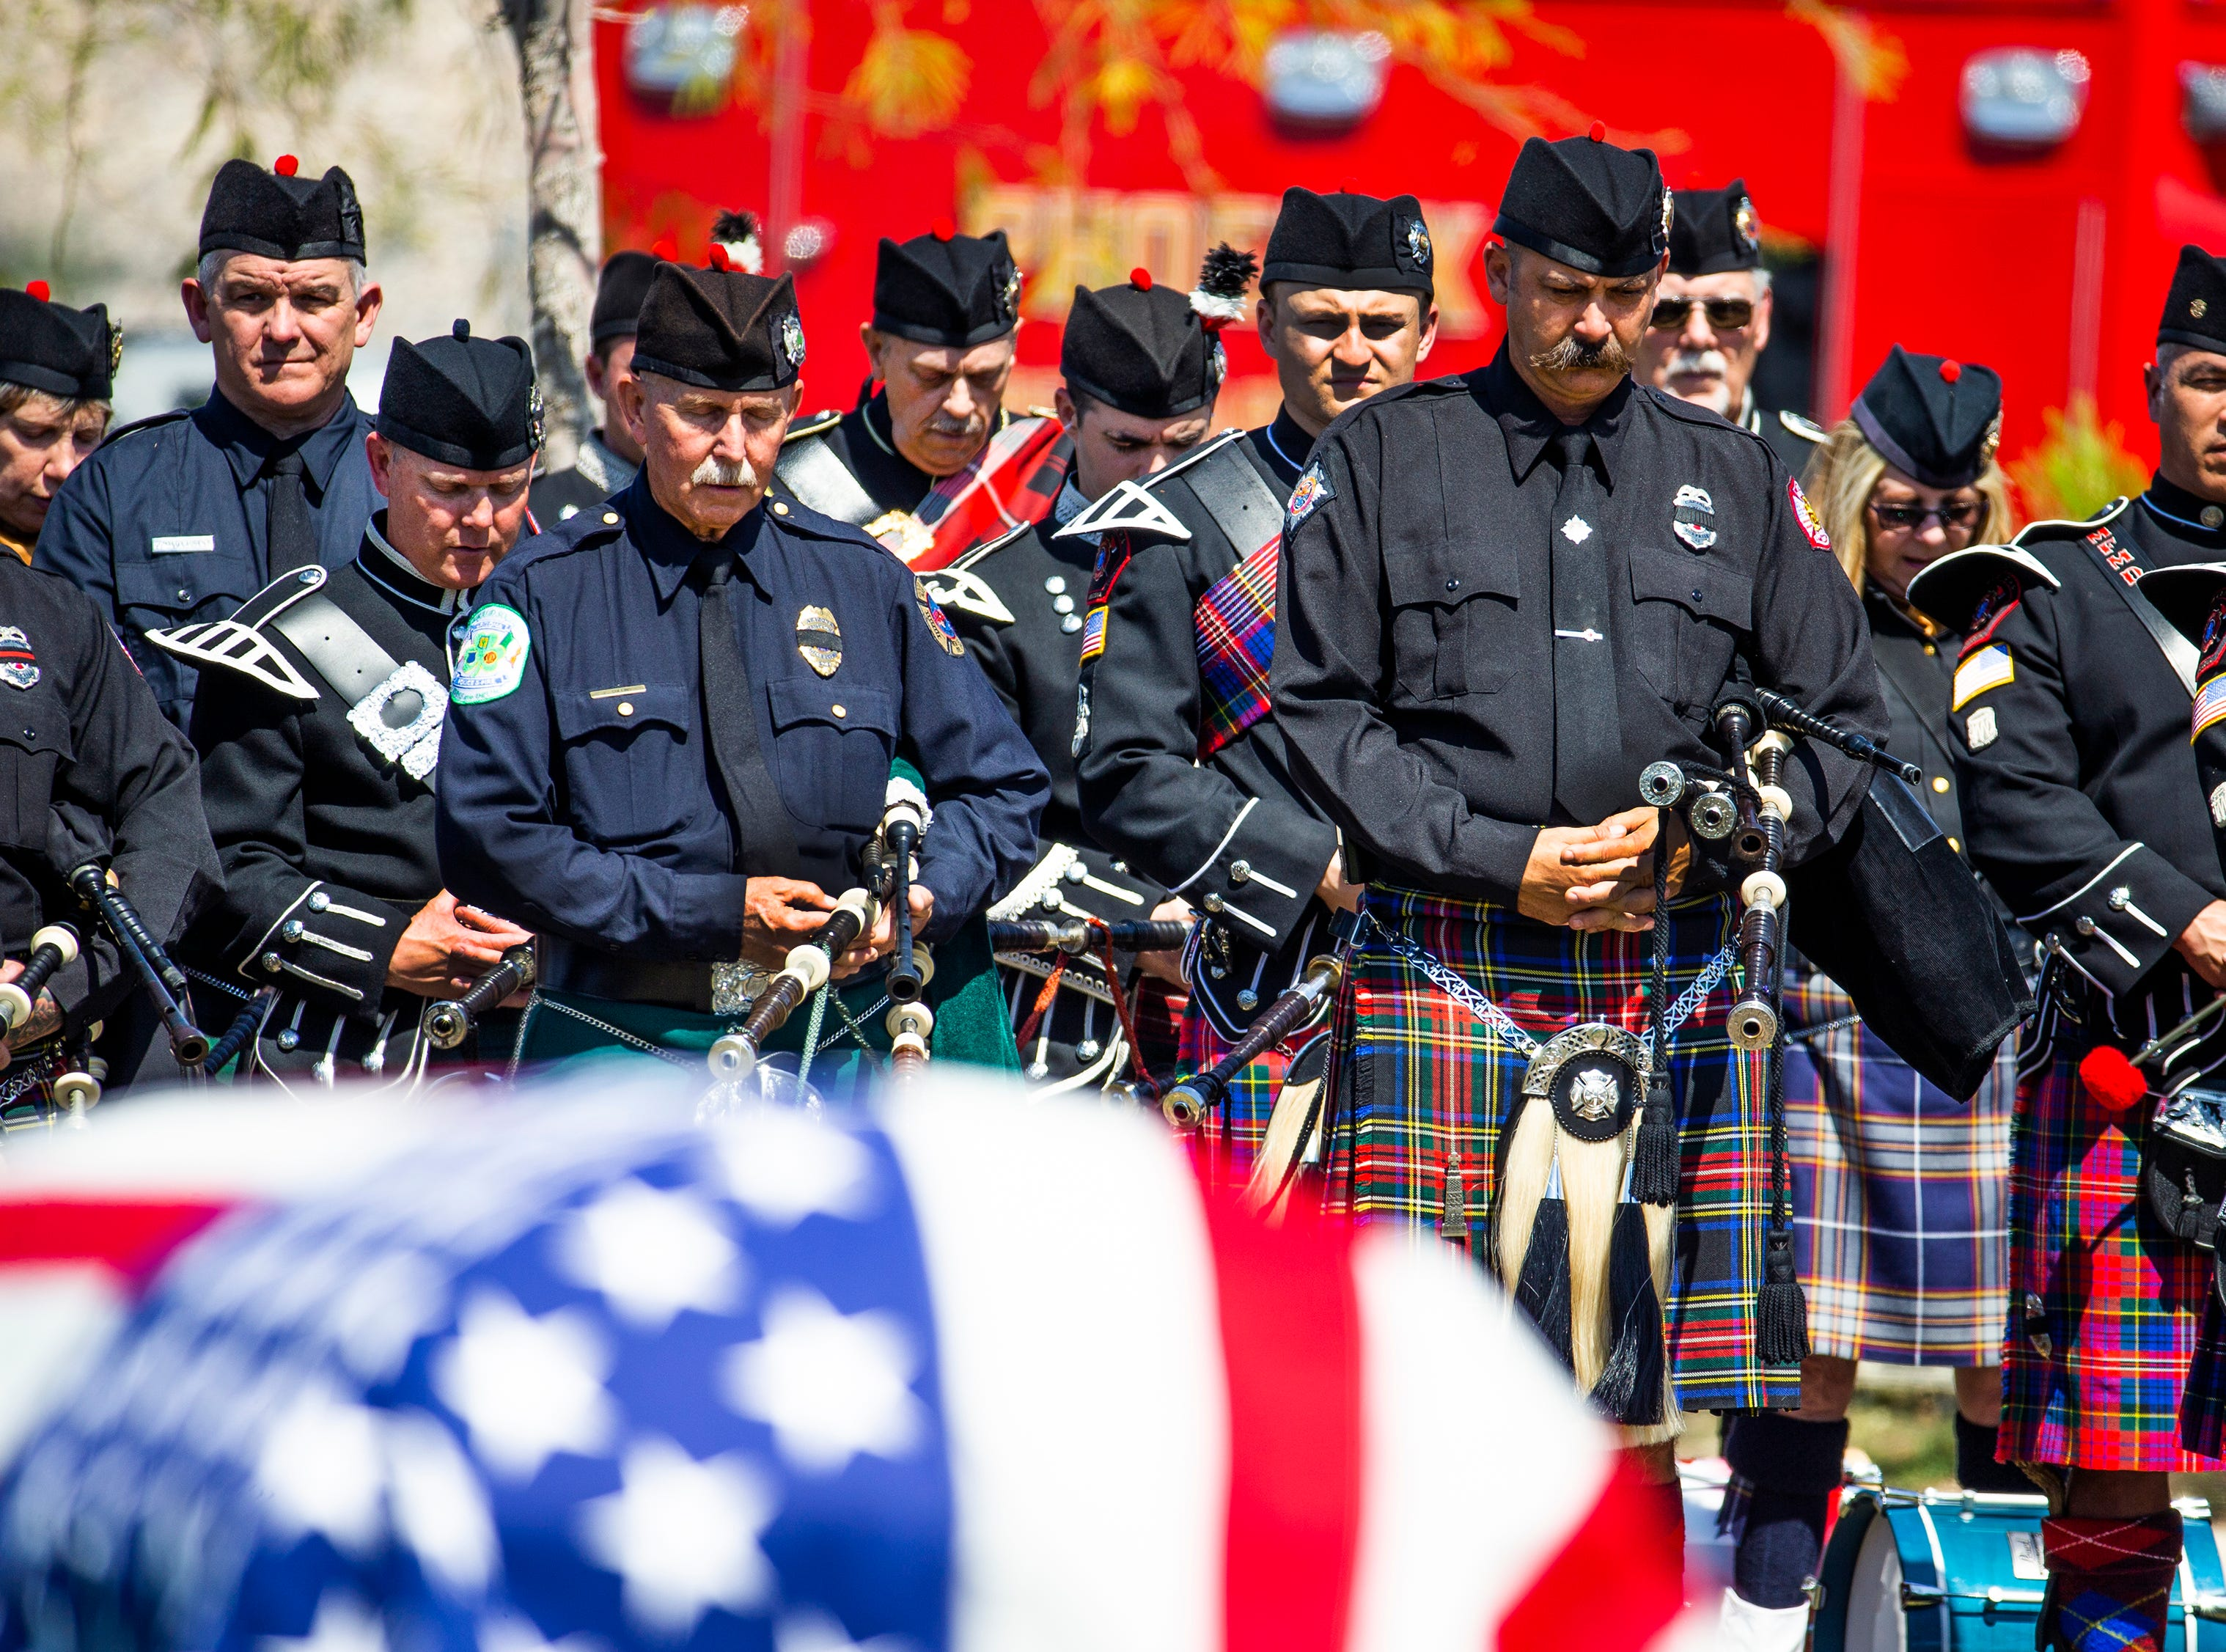 Phoenix police Officer Paul Rutherford is honored with bagpipes at Phoenix Memorial Cemetery March 28, 2019. Rutherford was killed while investigating the scene of an auto accident in Phoenix.